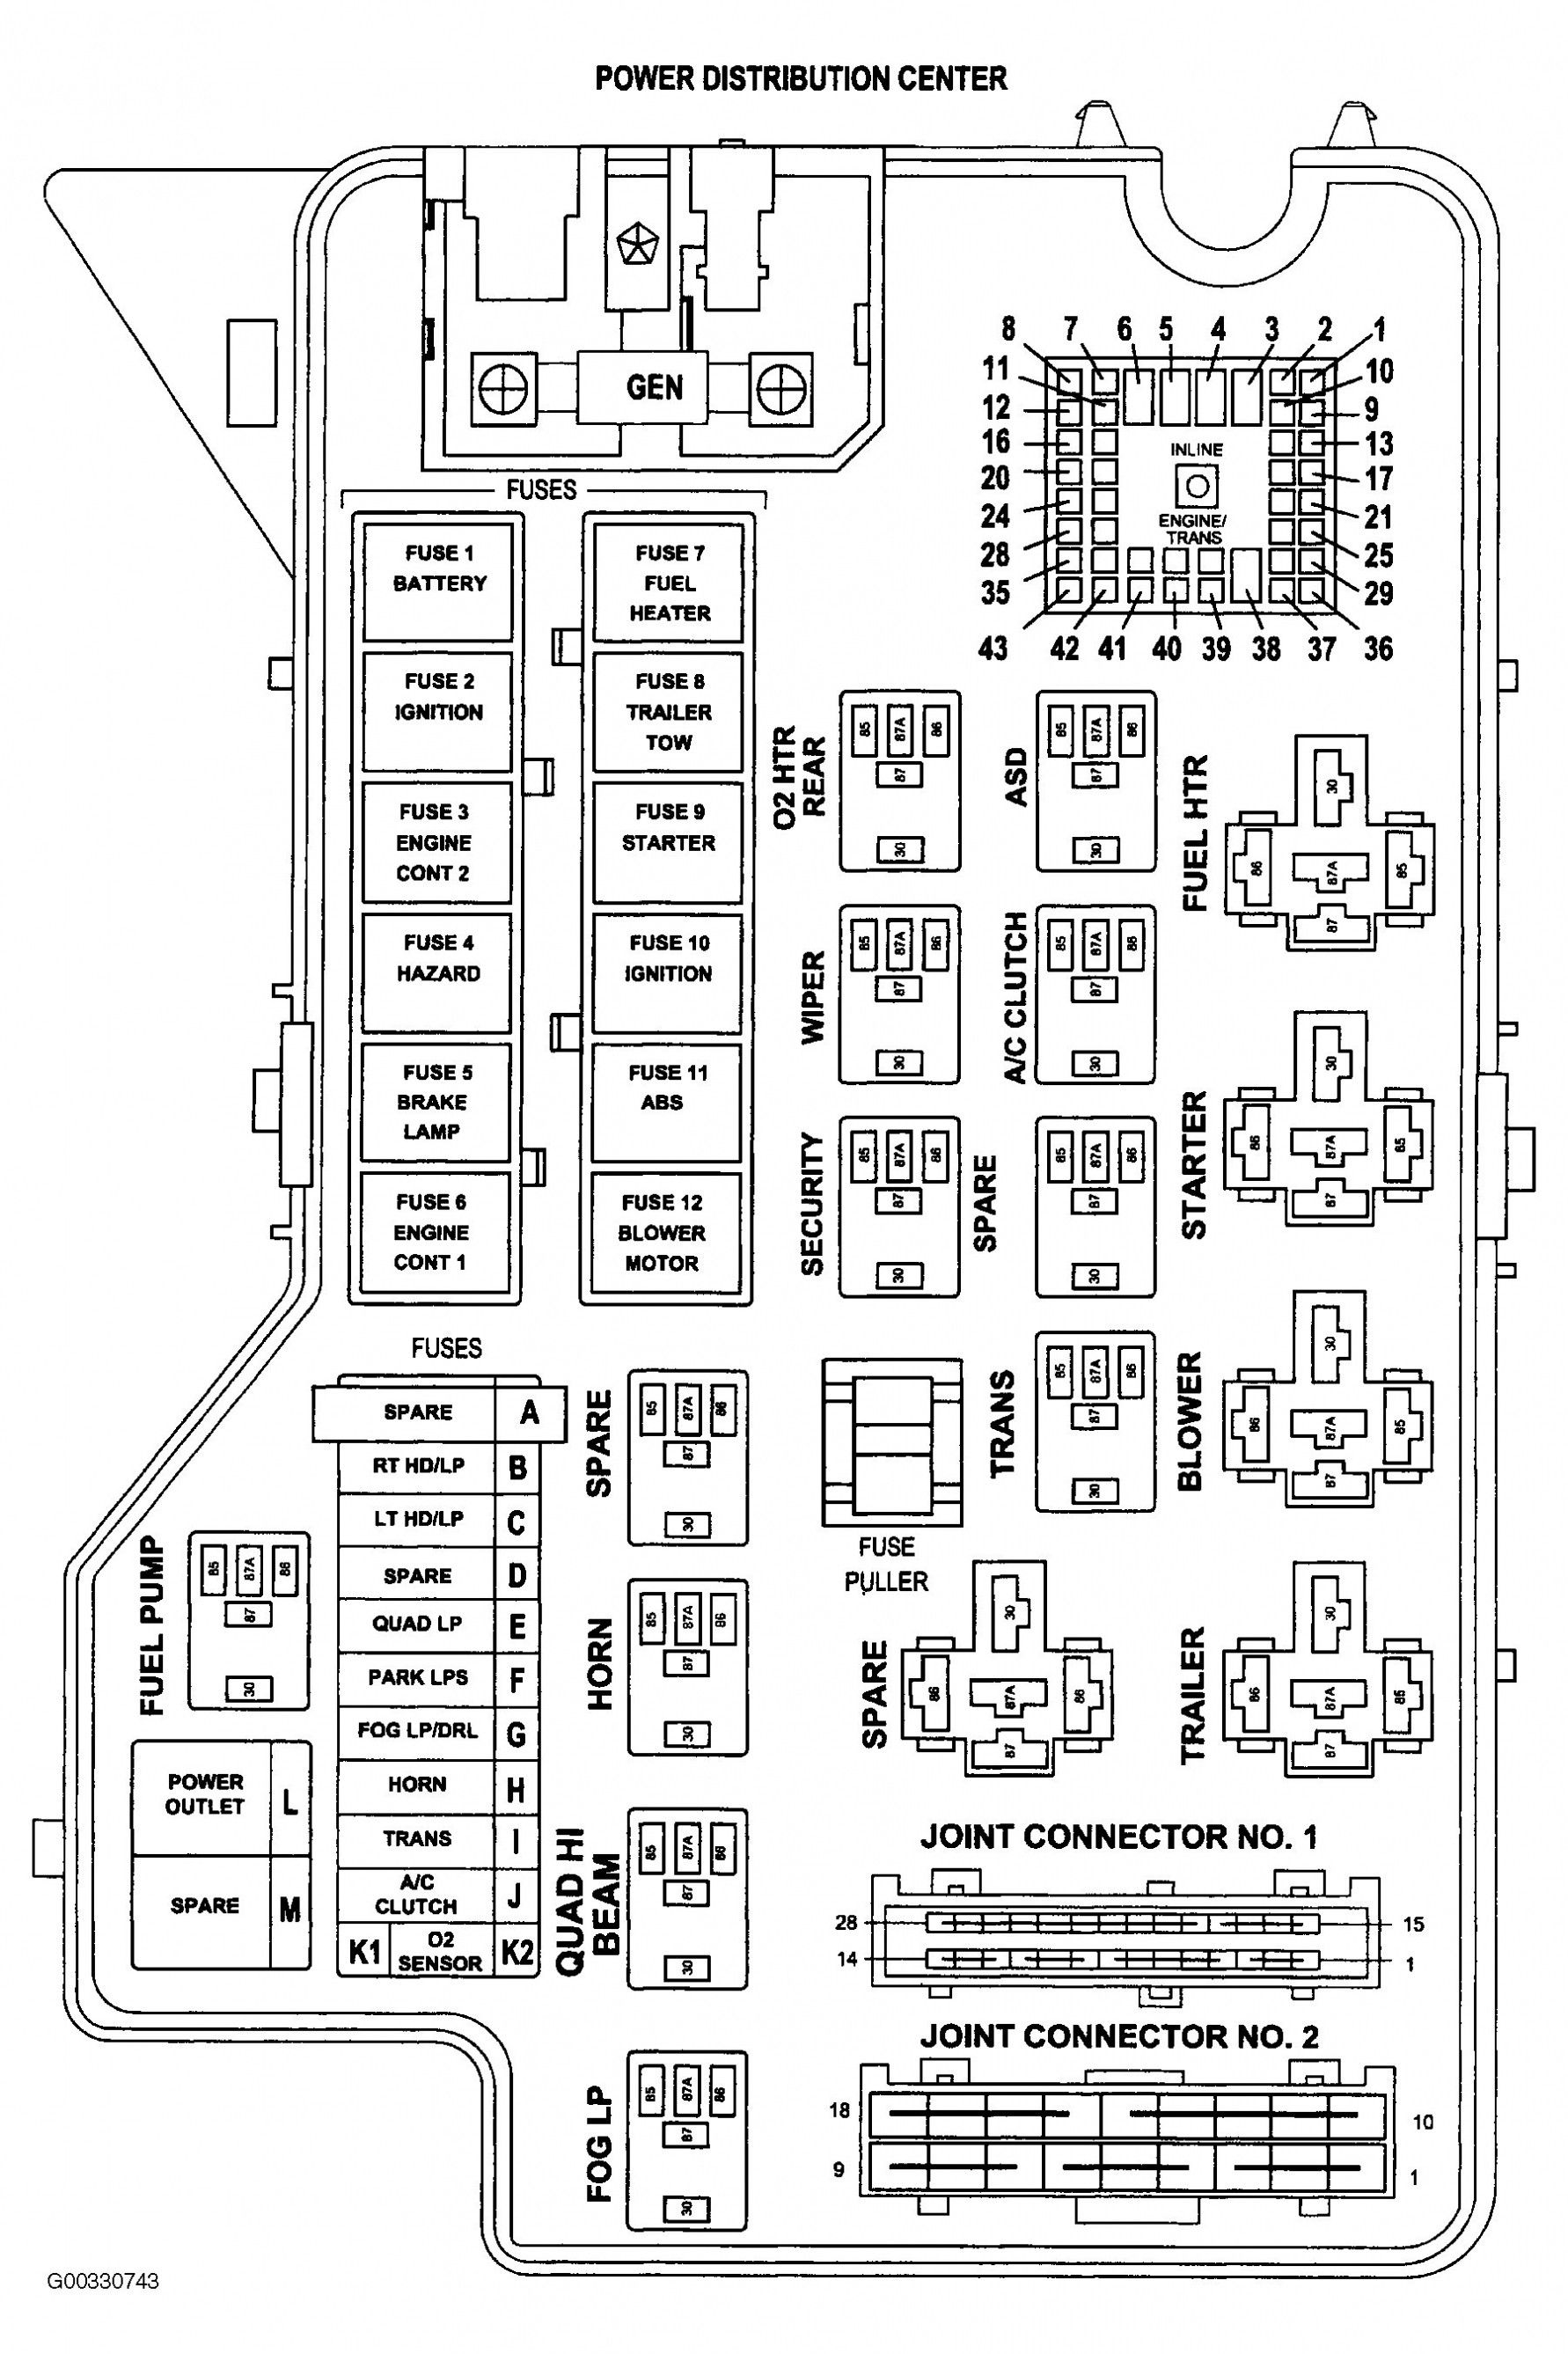 new 2011 dodge ram 1500 radio wiring diagram diagram 2011 dodge ram 1500 wiring diagram 2011 dodge truck wiring diagram #7